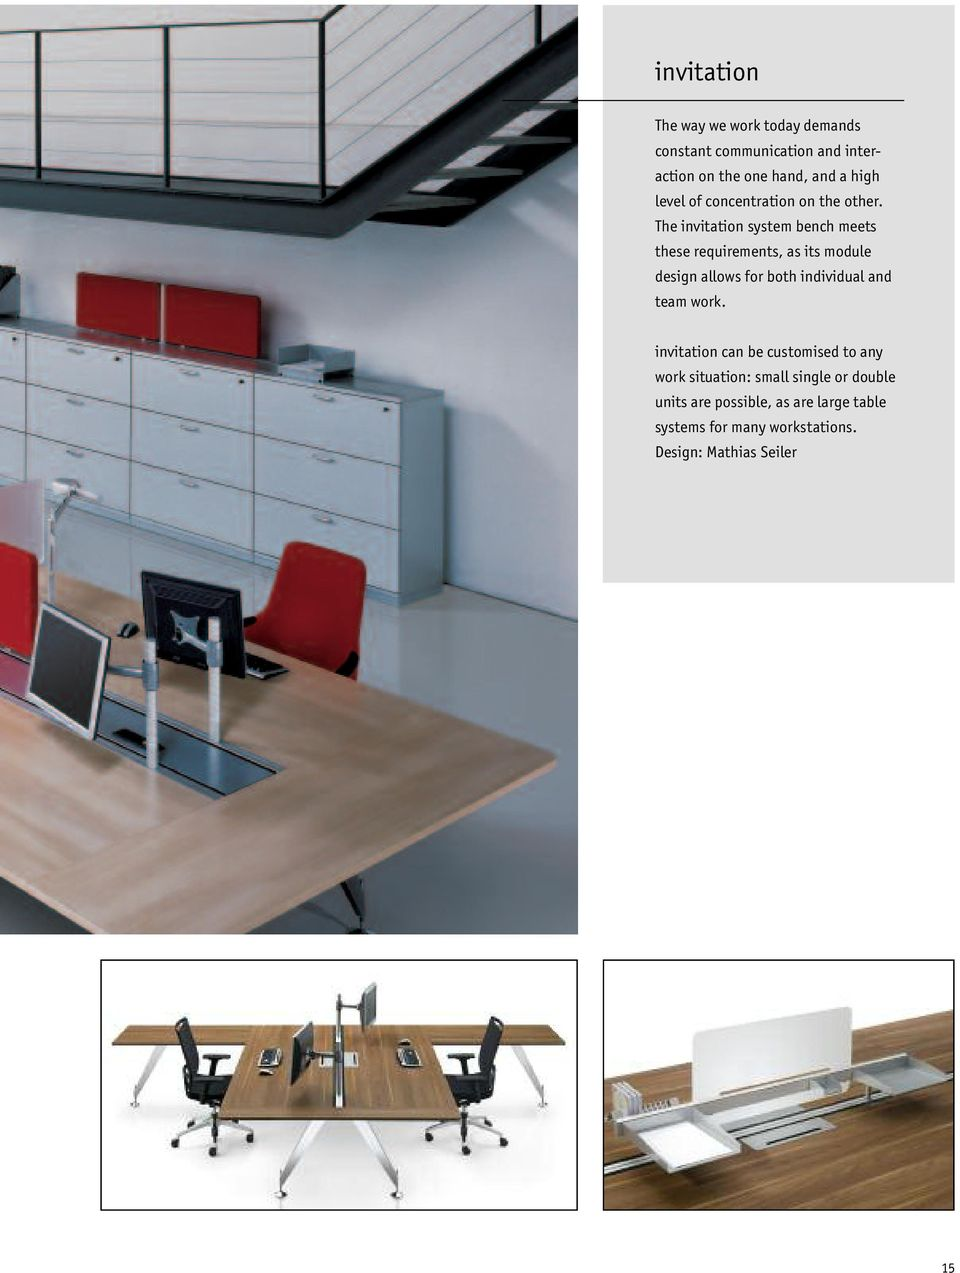 The invitation system bench meets these requirements, as its module design allows for both individual and